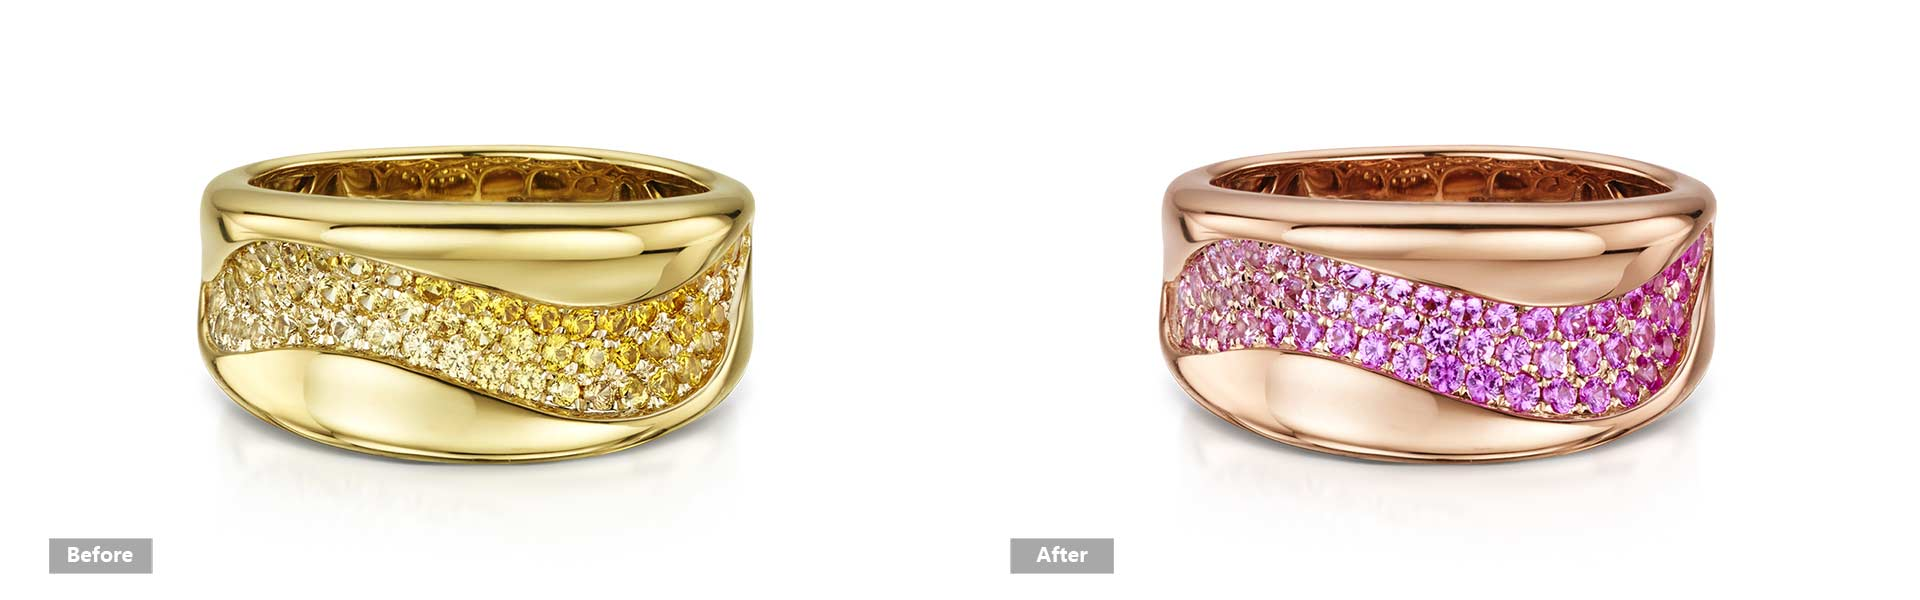 change jewelry color, change yellow gold to rose gold